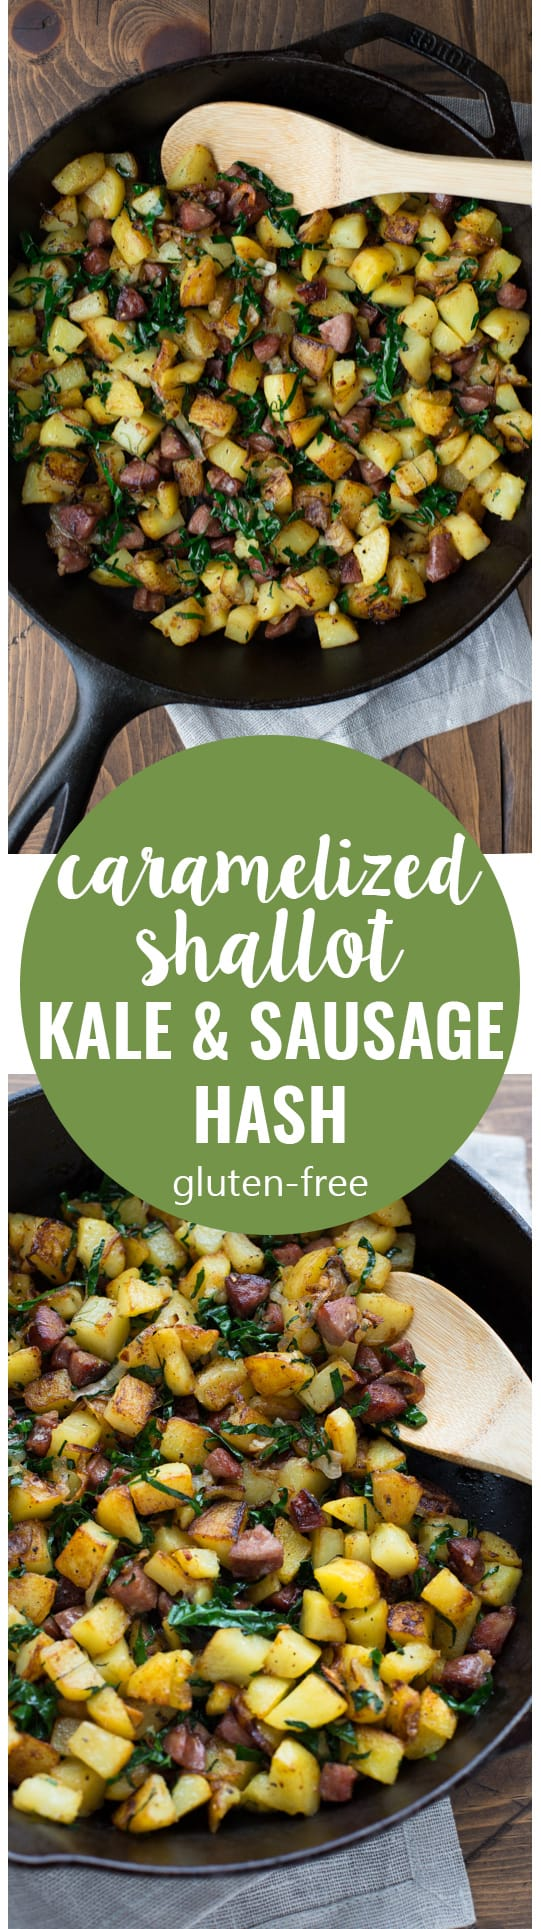 Need something to do with all the sausages you bought at Costco? Make this healthy and satisfying Caramelized Shallot, Kale & Sausage Hash! (Gluten-Free)